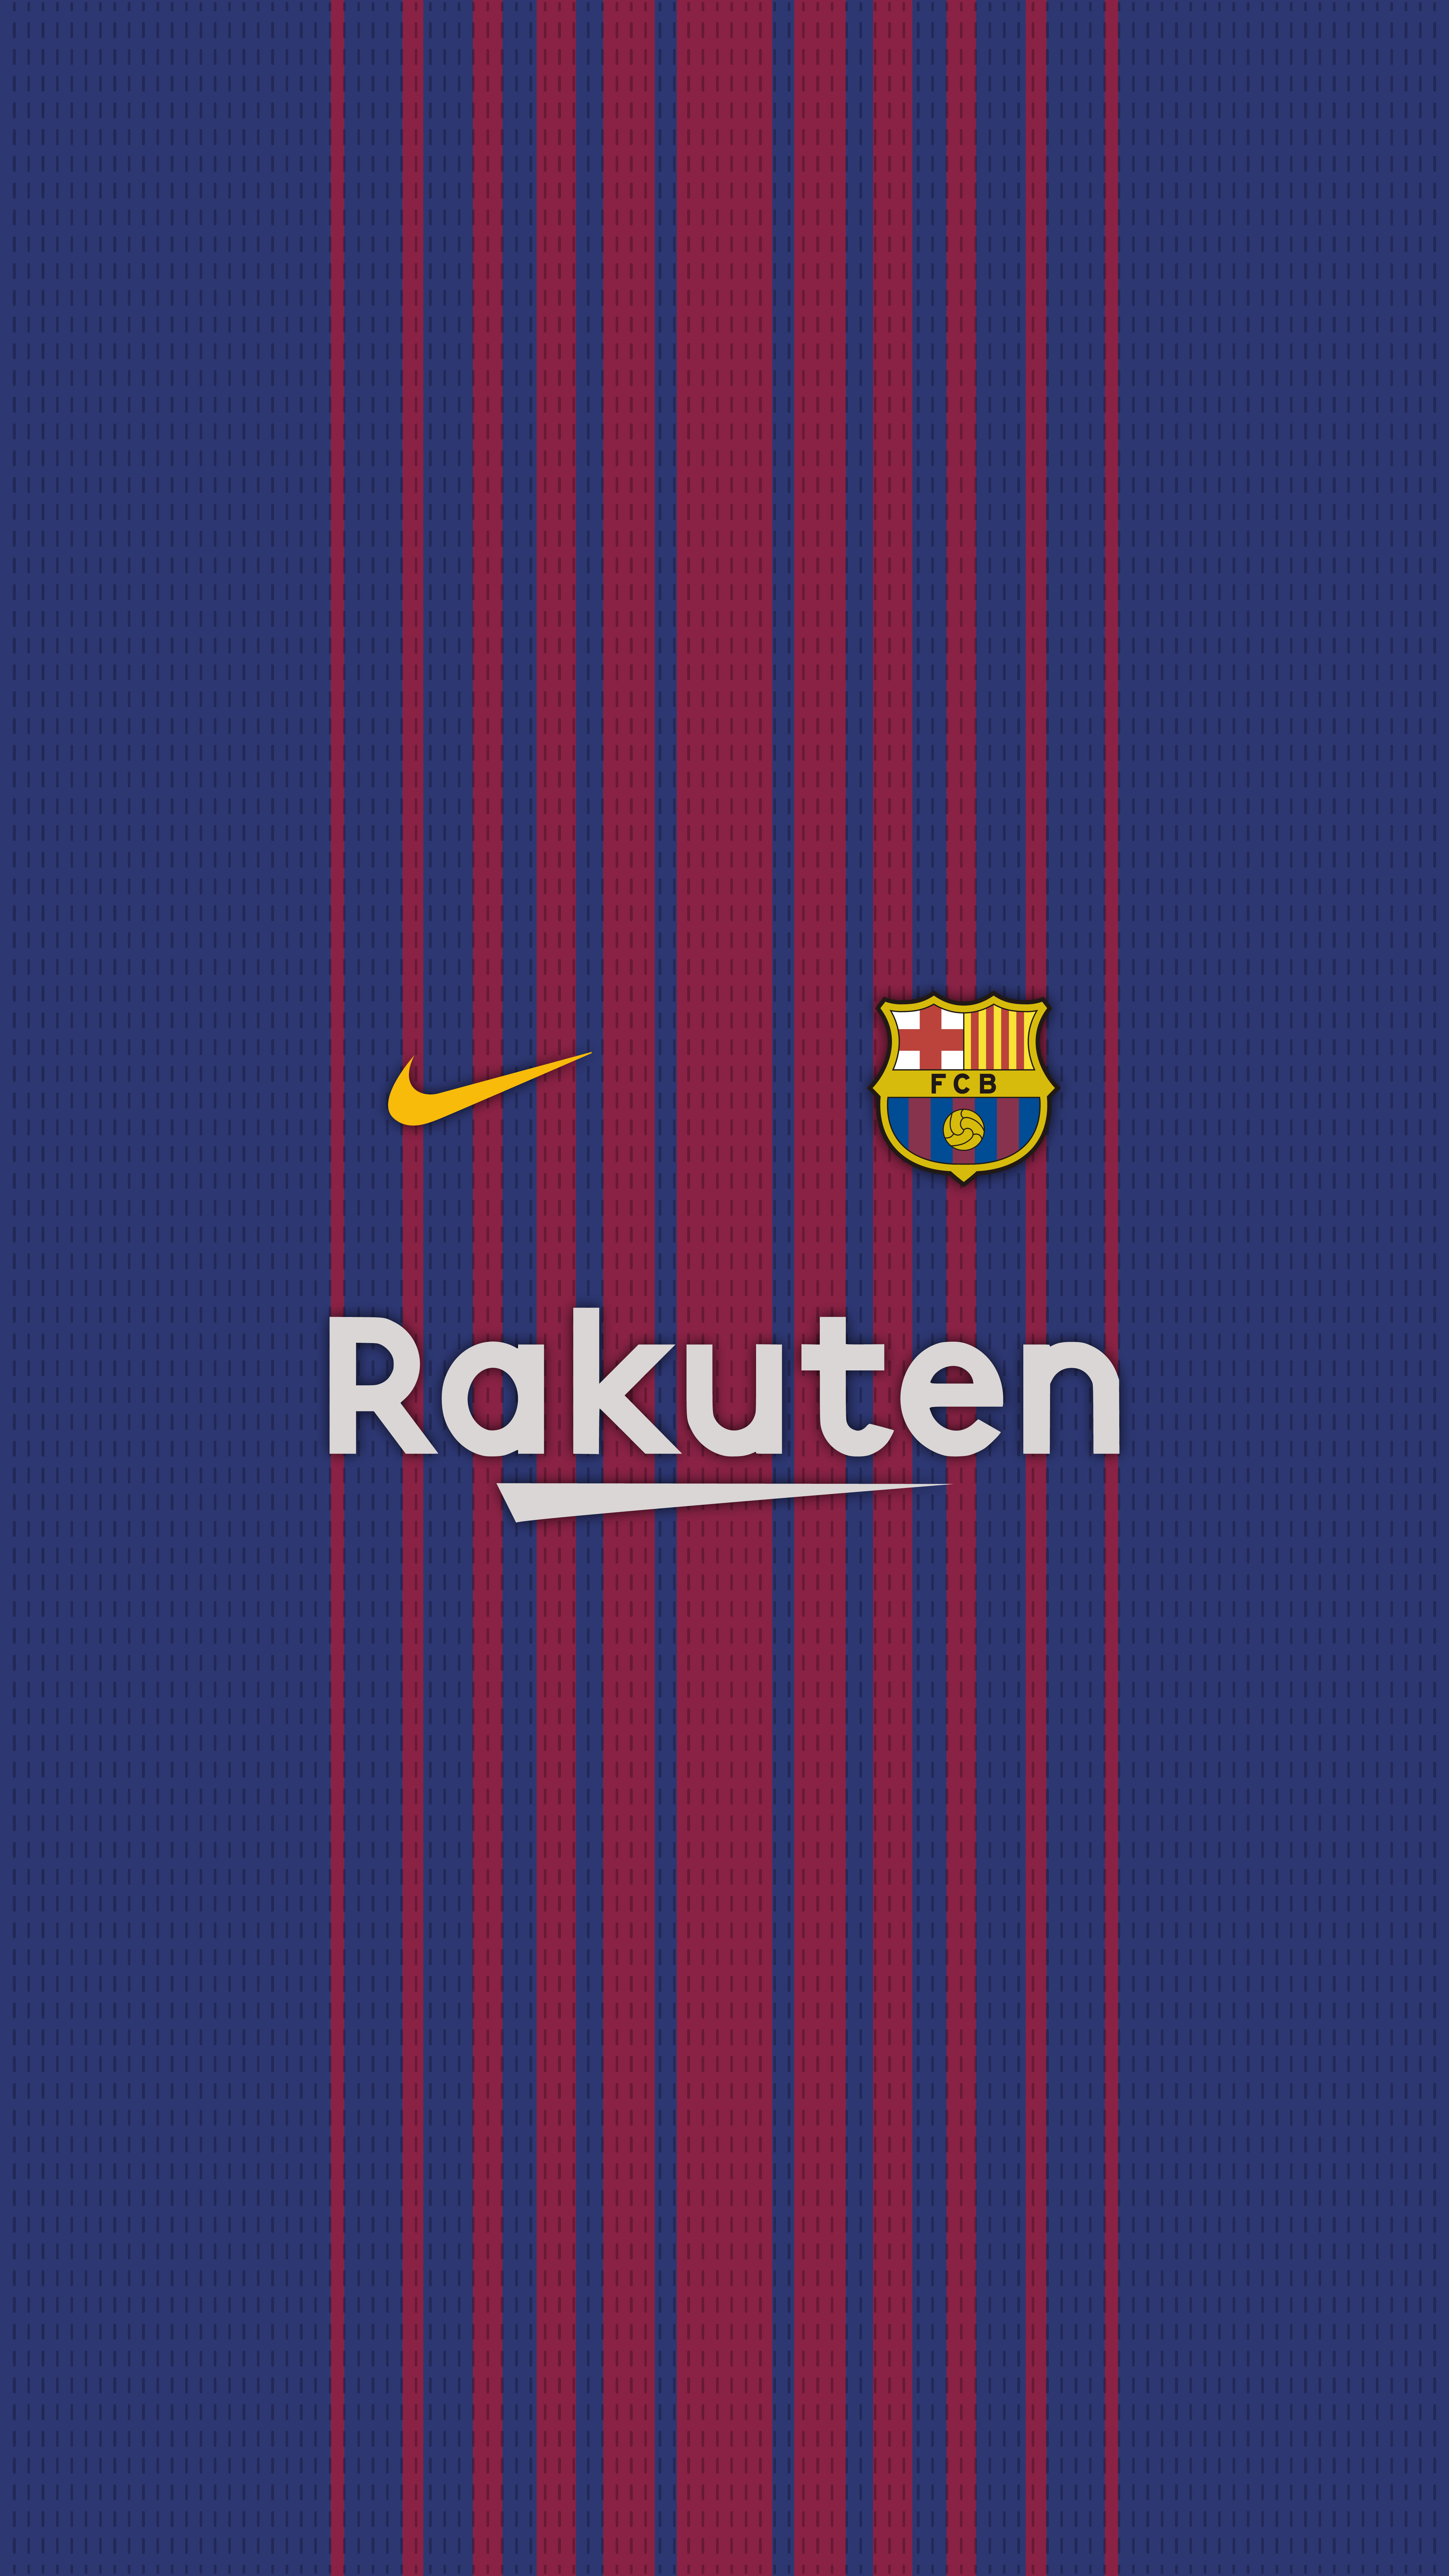 Wallpaper iphone barcelona - Camiseta Fc Barcelona 2017 2018 What Do U Think About This